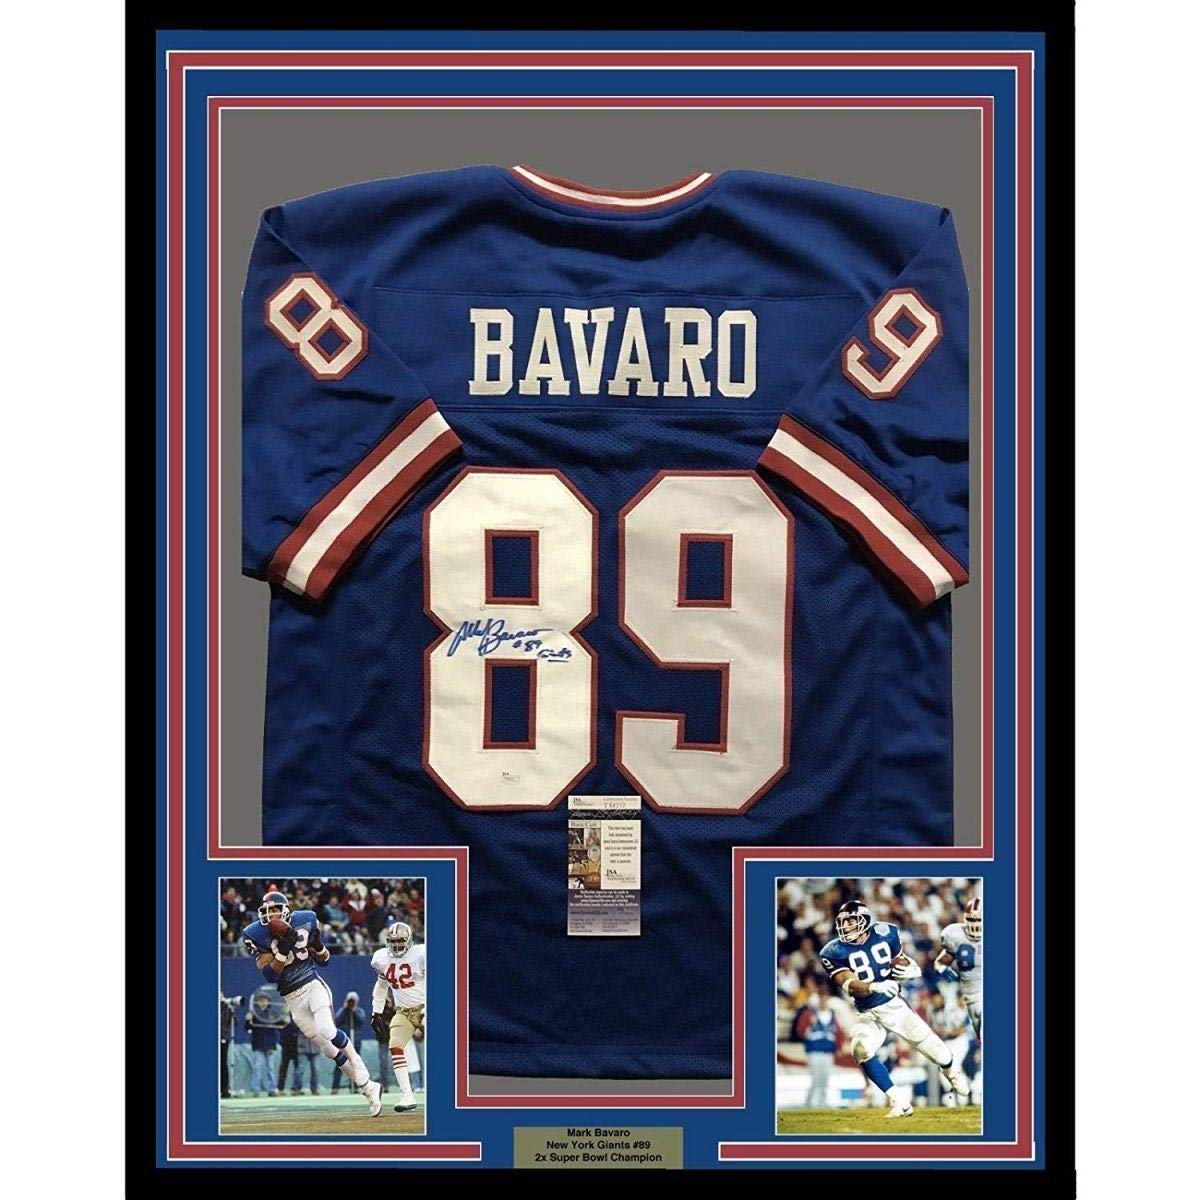 946d280786e Autographed Mark Bavaro Jersey - FRAMED 33x42 Blue COA - JSA Certified -  Autographed NFL Jerseys at Amazon s Sports Collectibles Store